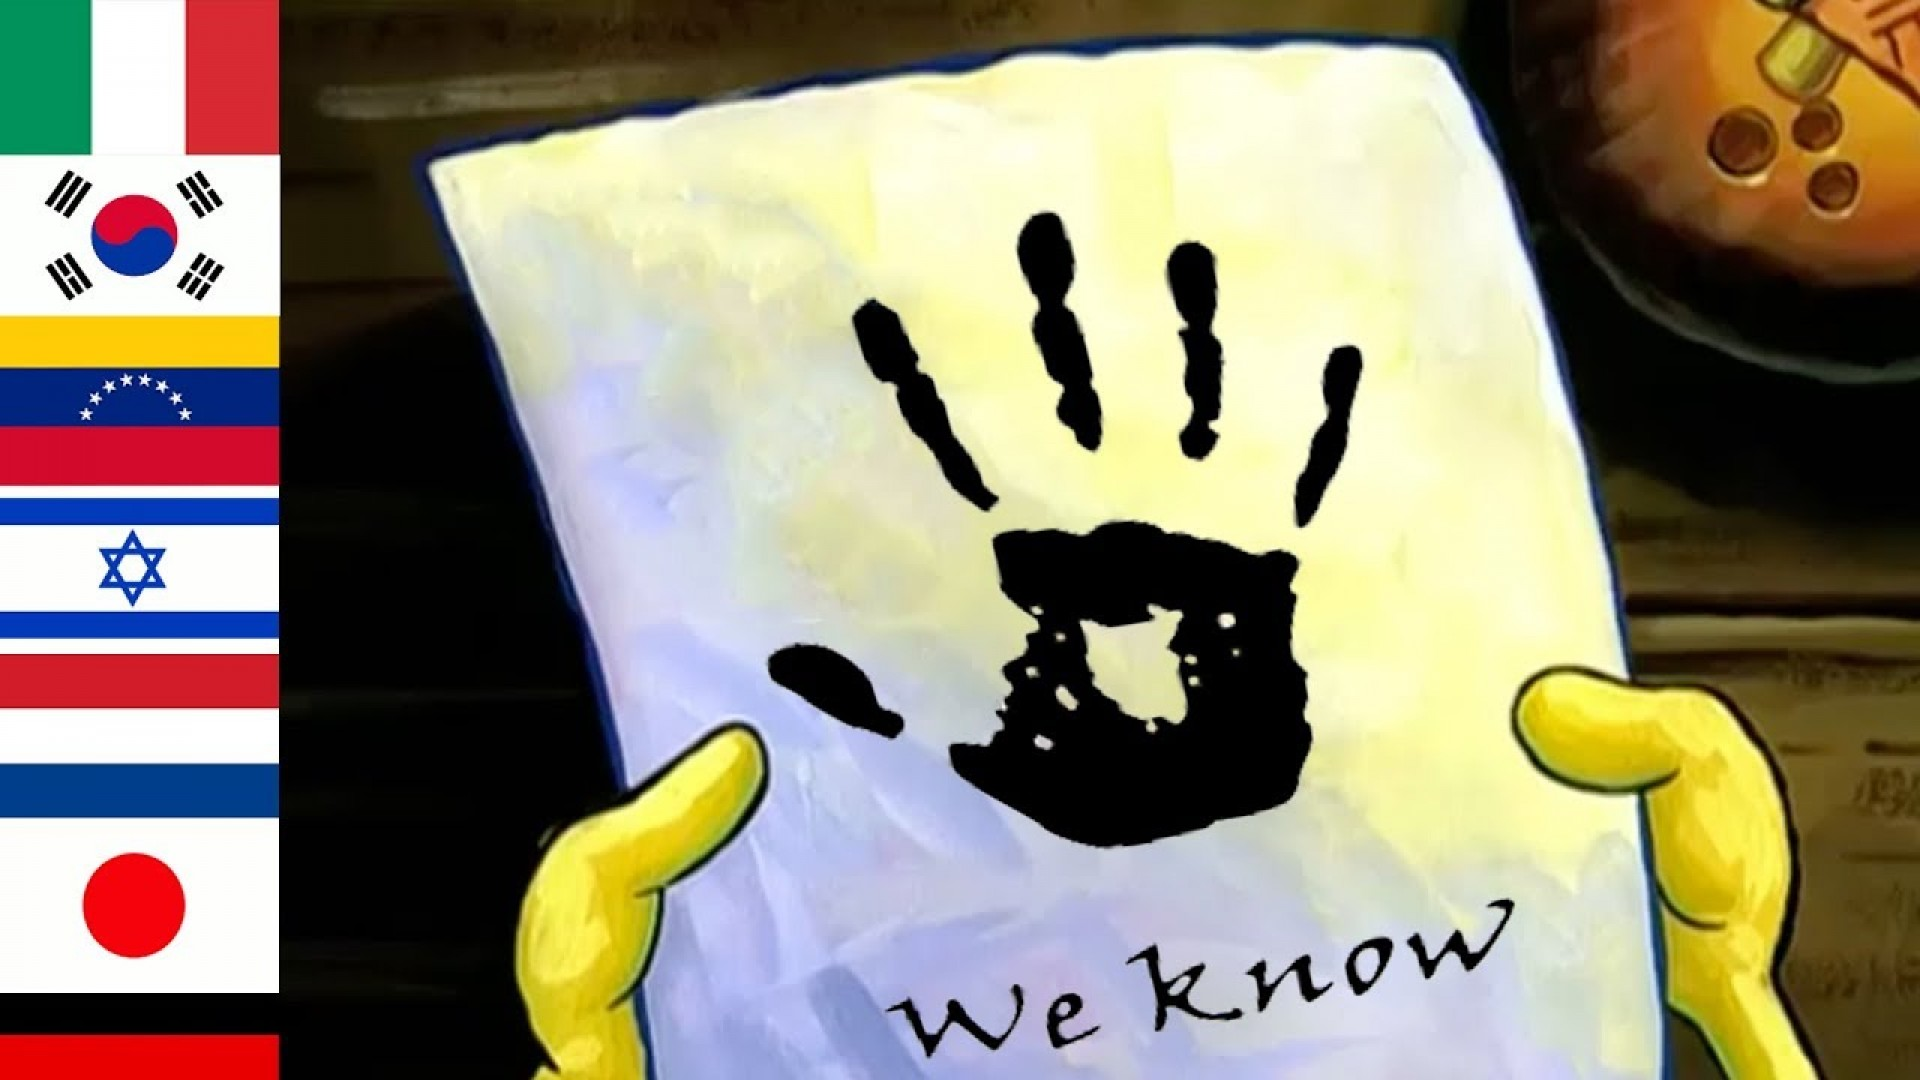 005 Maxresdefault Spongebob Essay Surprising Writing Gif Meme 1920